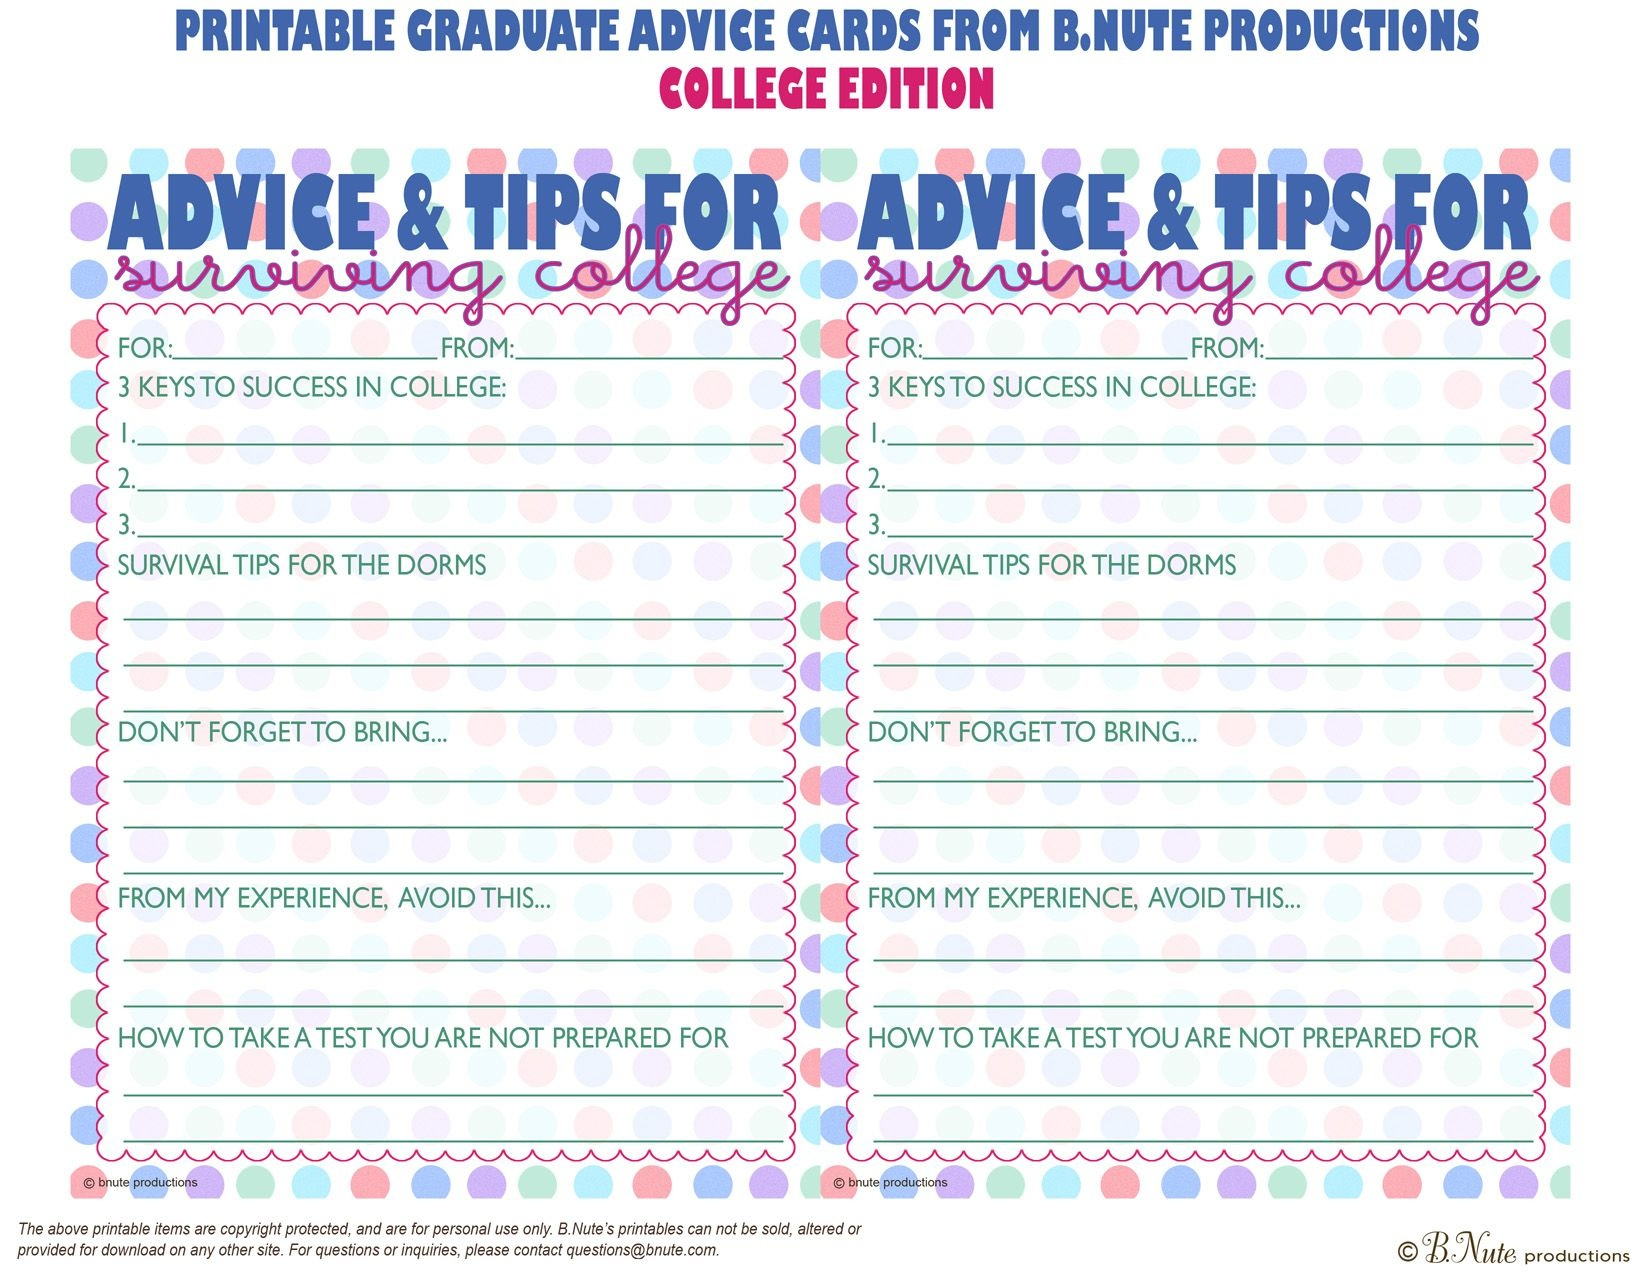 Bnute Productions: Free Printable Graduate Advice Cards - College - Free Printable Grade Cards